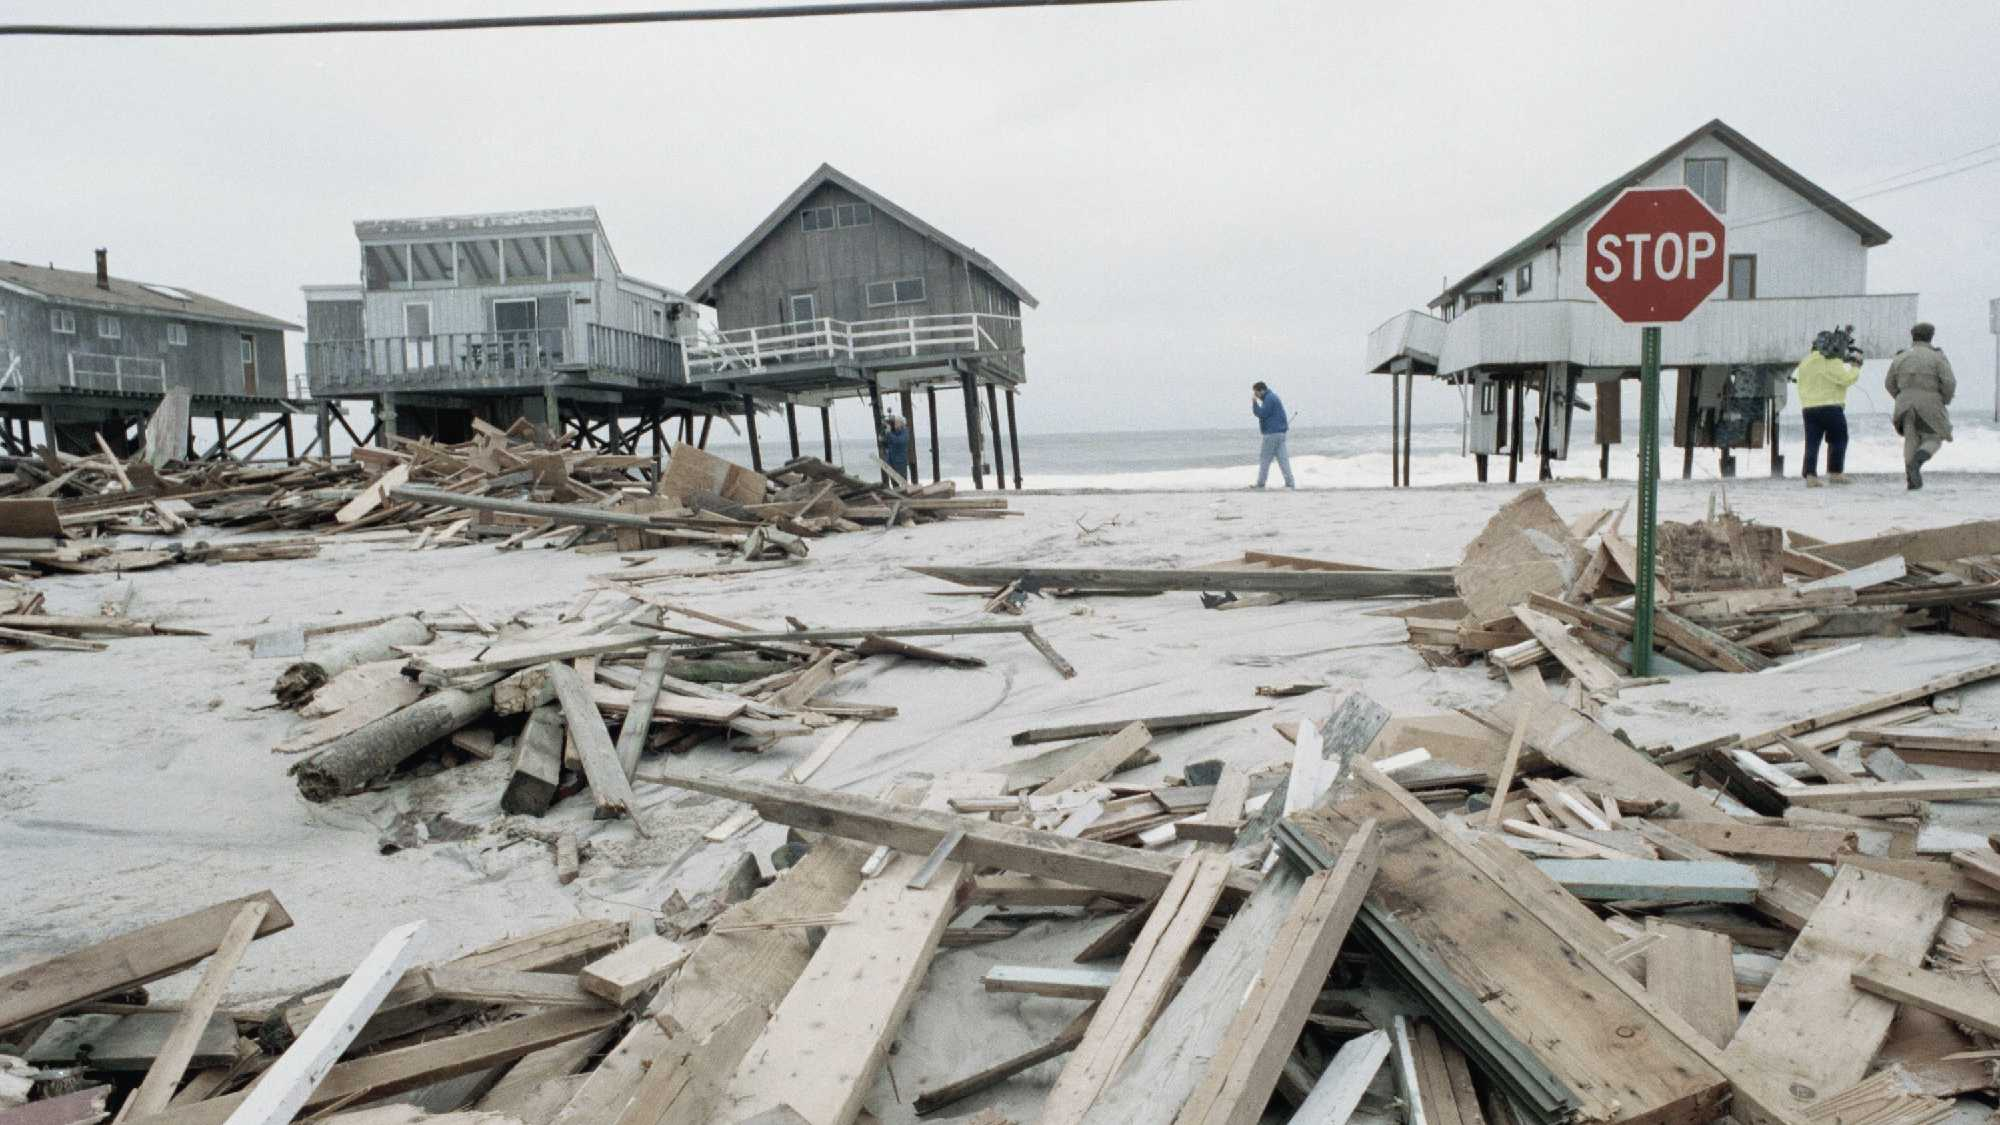 People survey the damage to home along Westhampton Beach after strong winds and high tides swept across the region.